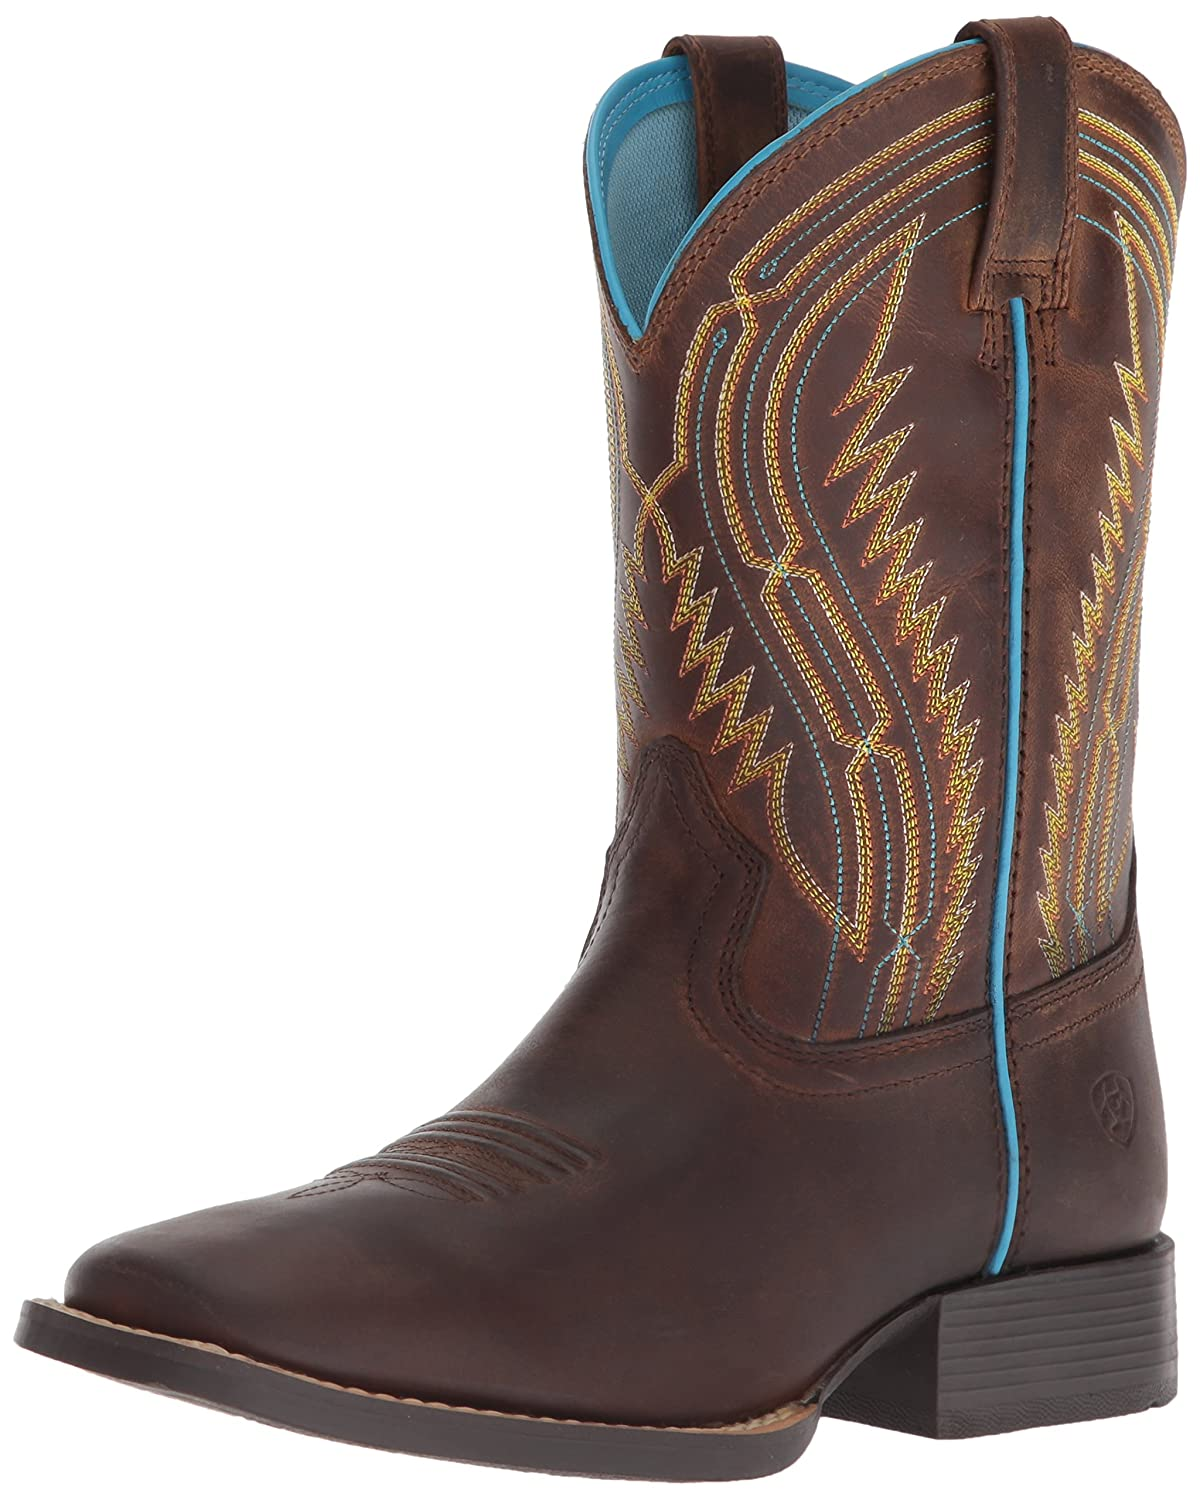 Distressed Brown ARIAT WOMEN Women's Western Cowboy Boot